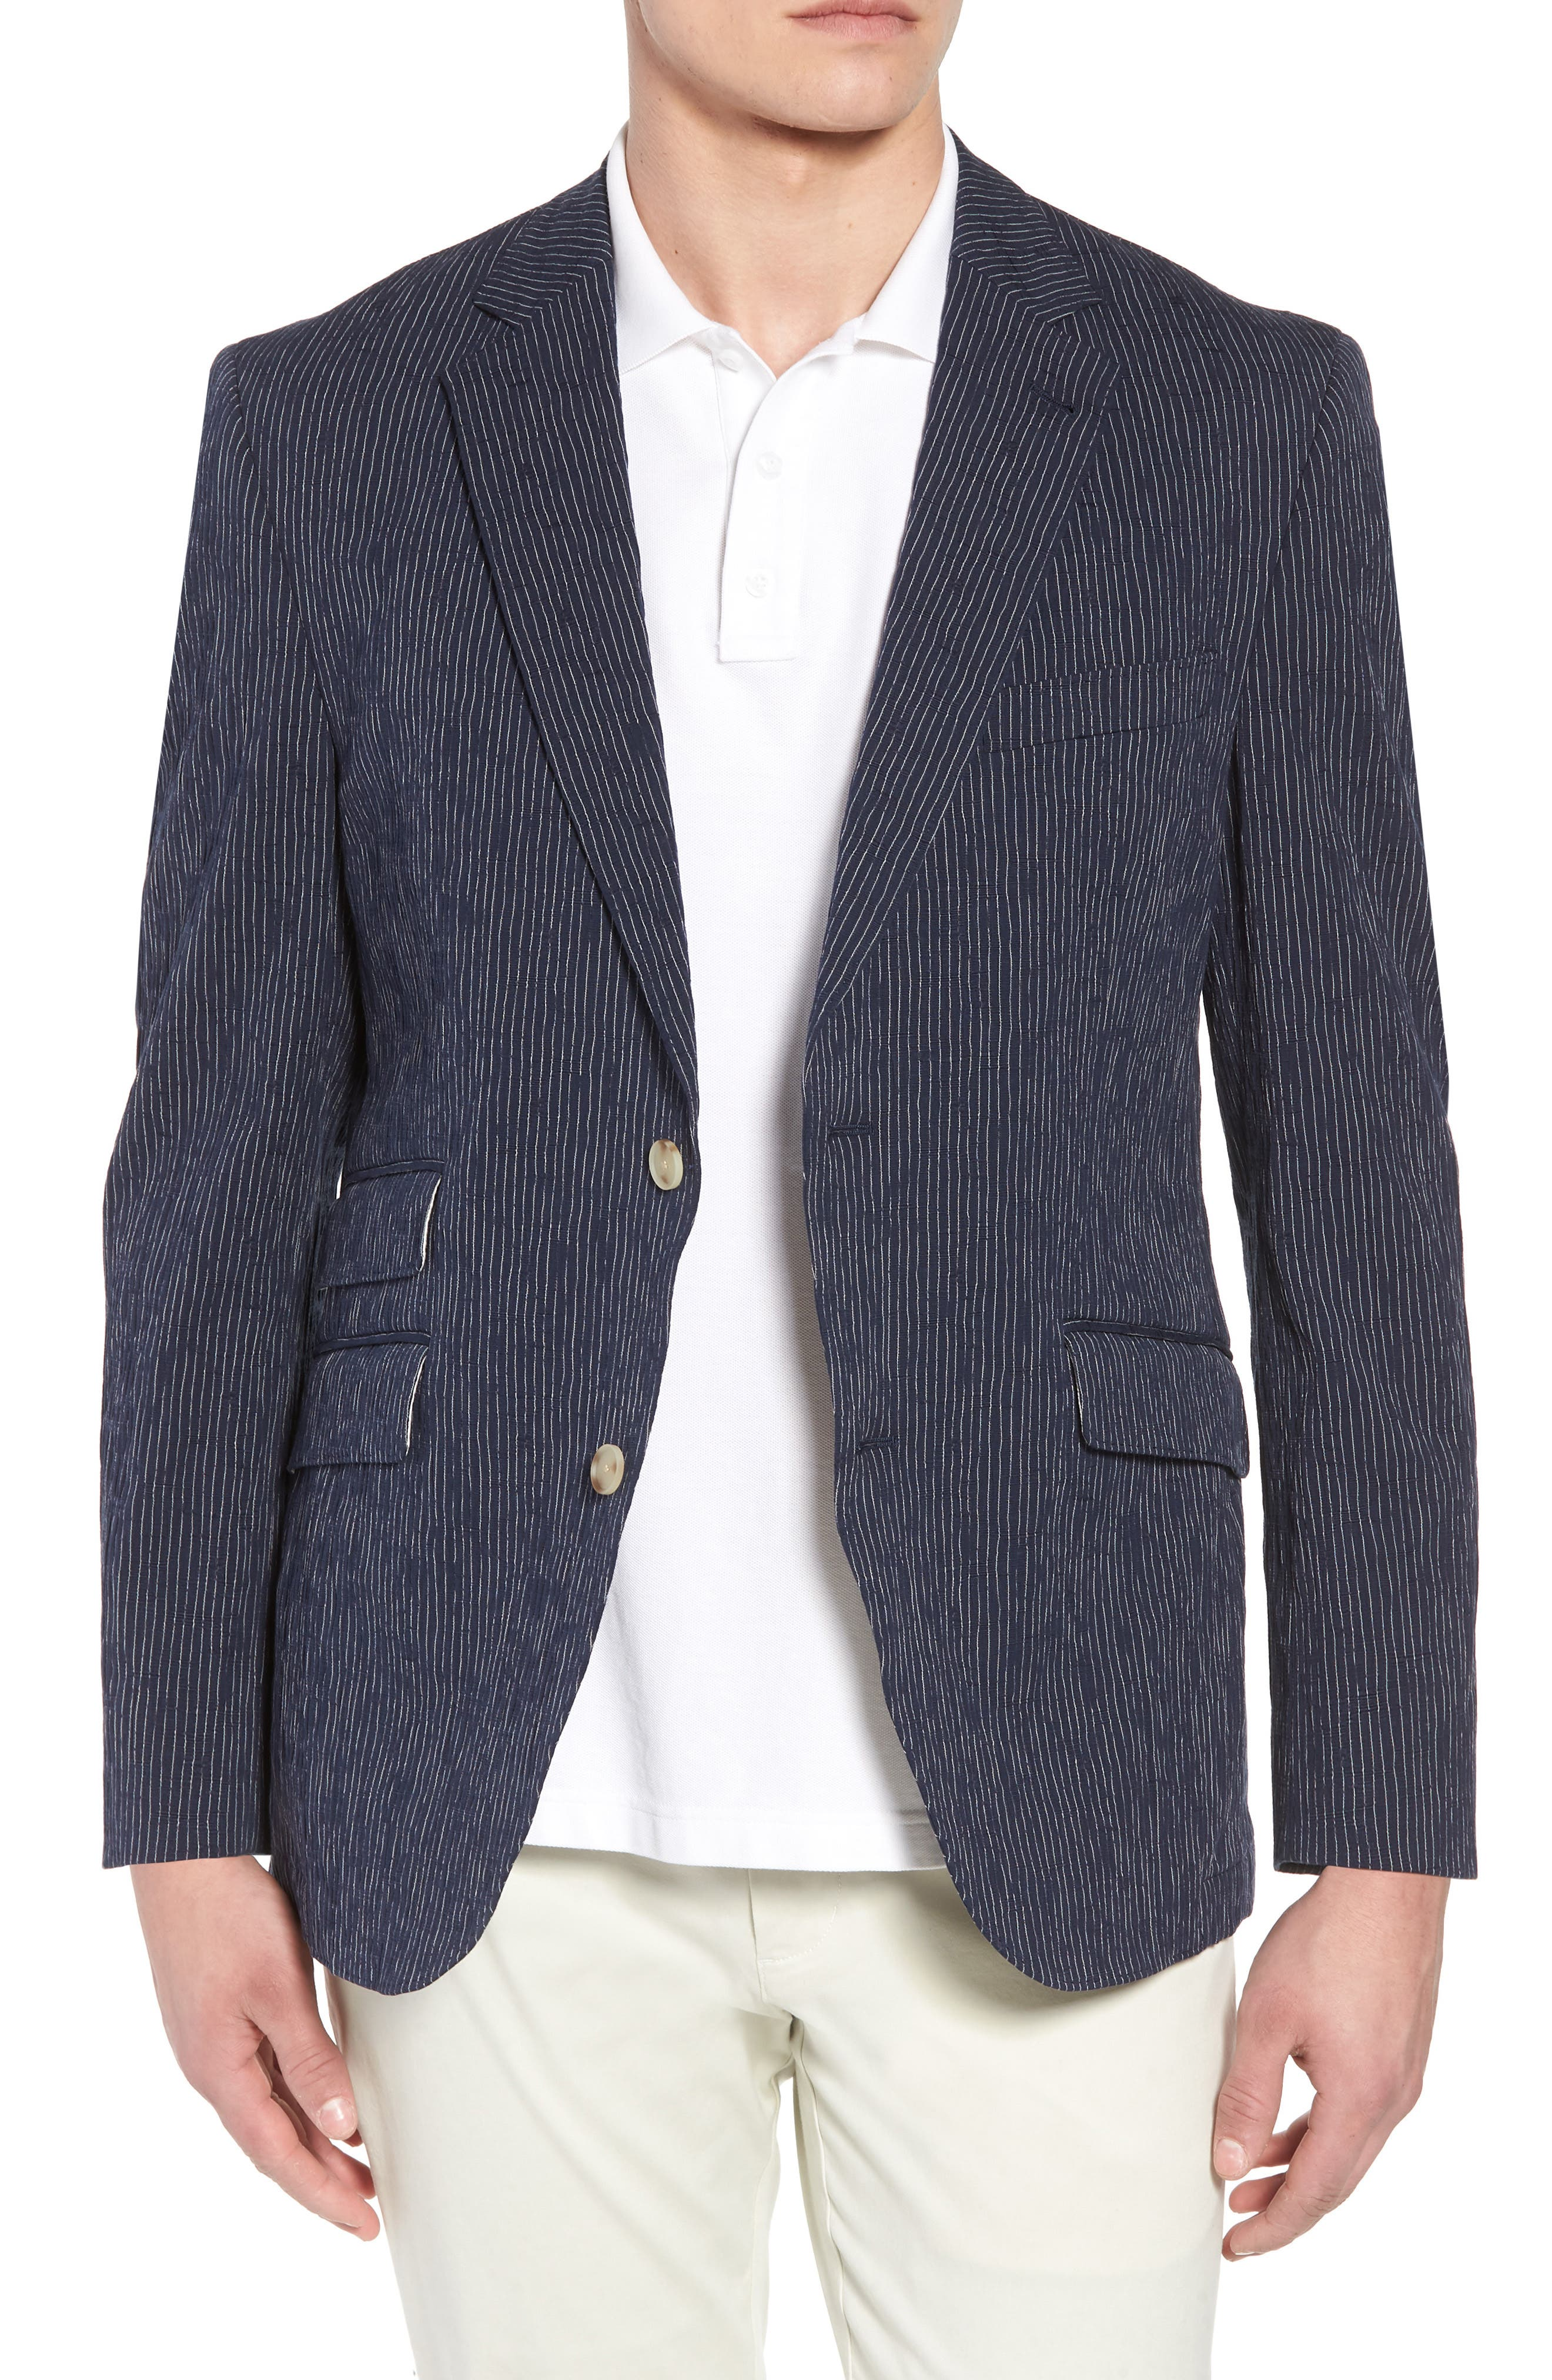 Sting AIM Classic Fit Stretch Stripe Cotton Sport Coat,                             Main thumbnail 1, color,                             410